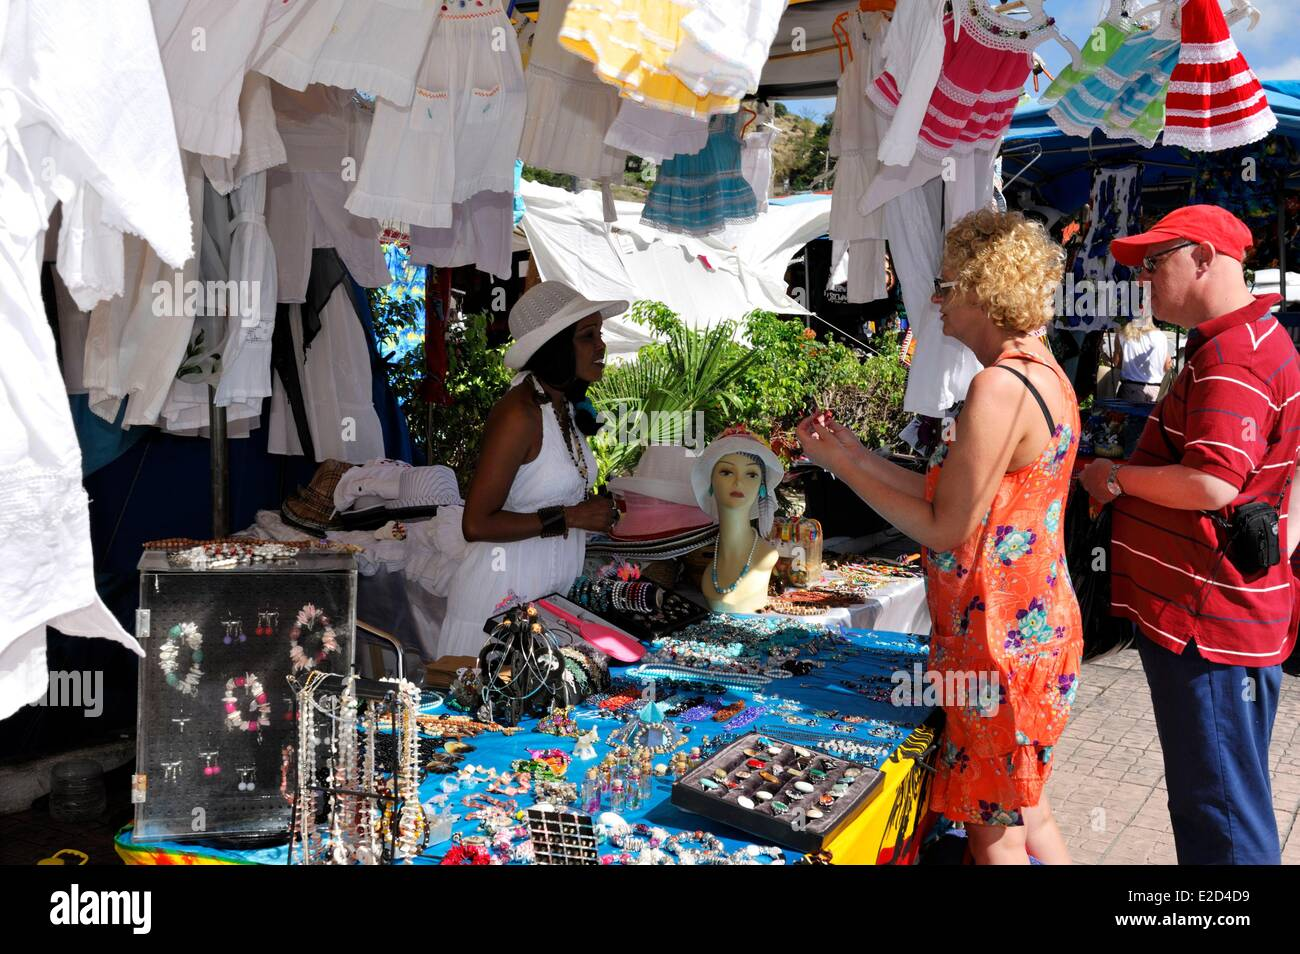 France Guadeloupe Saint Martin Marigot market couple stopped at a stand of jewelry and clothing - Stock Image